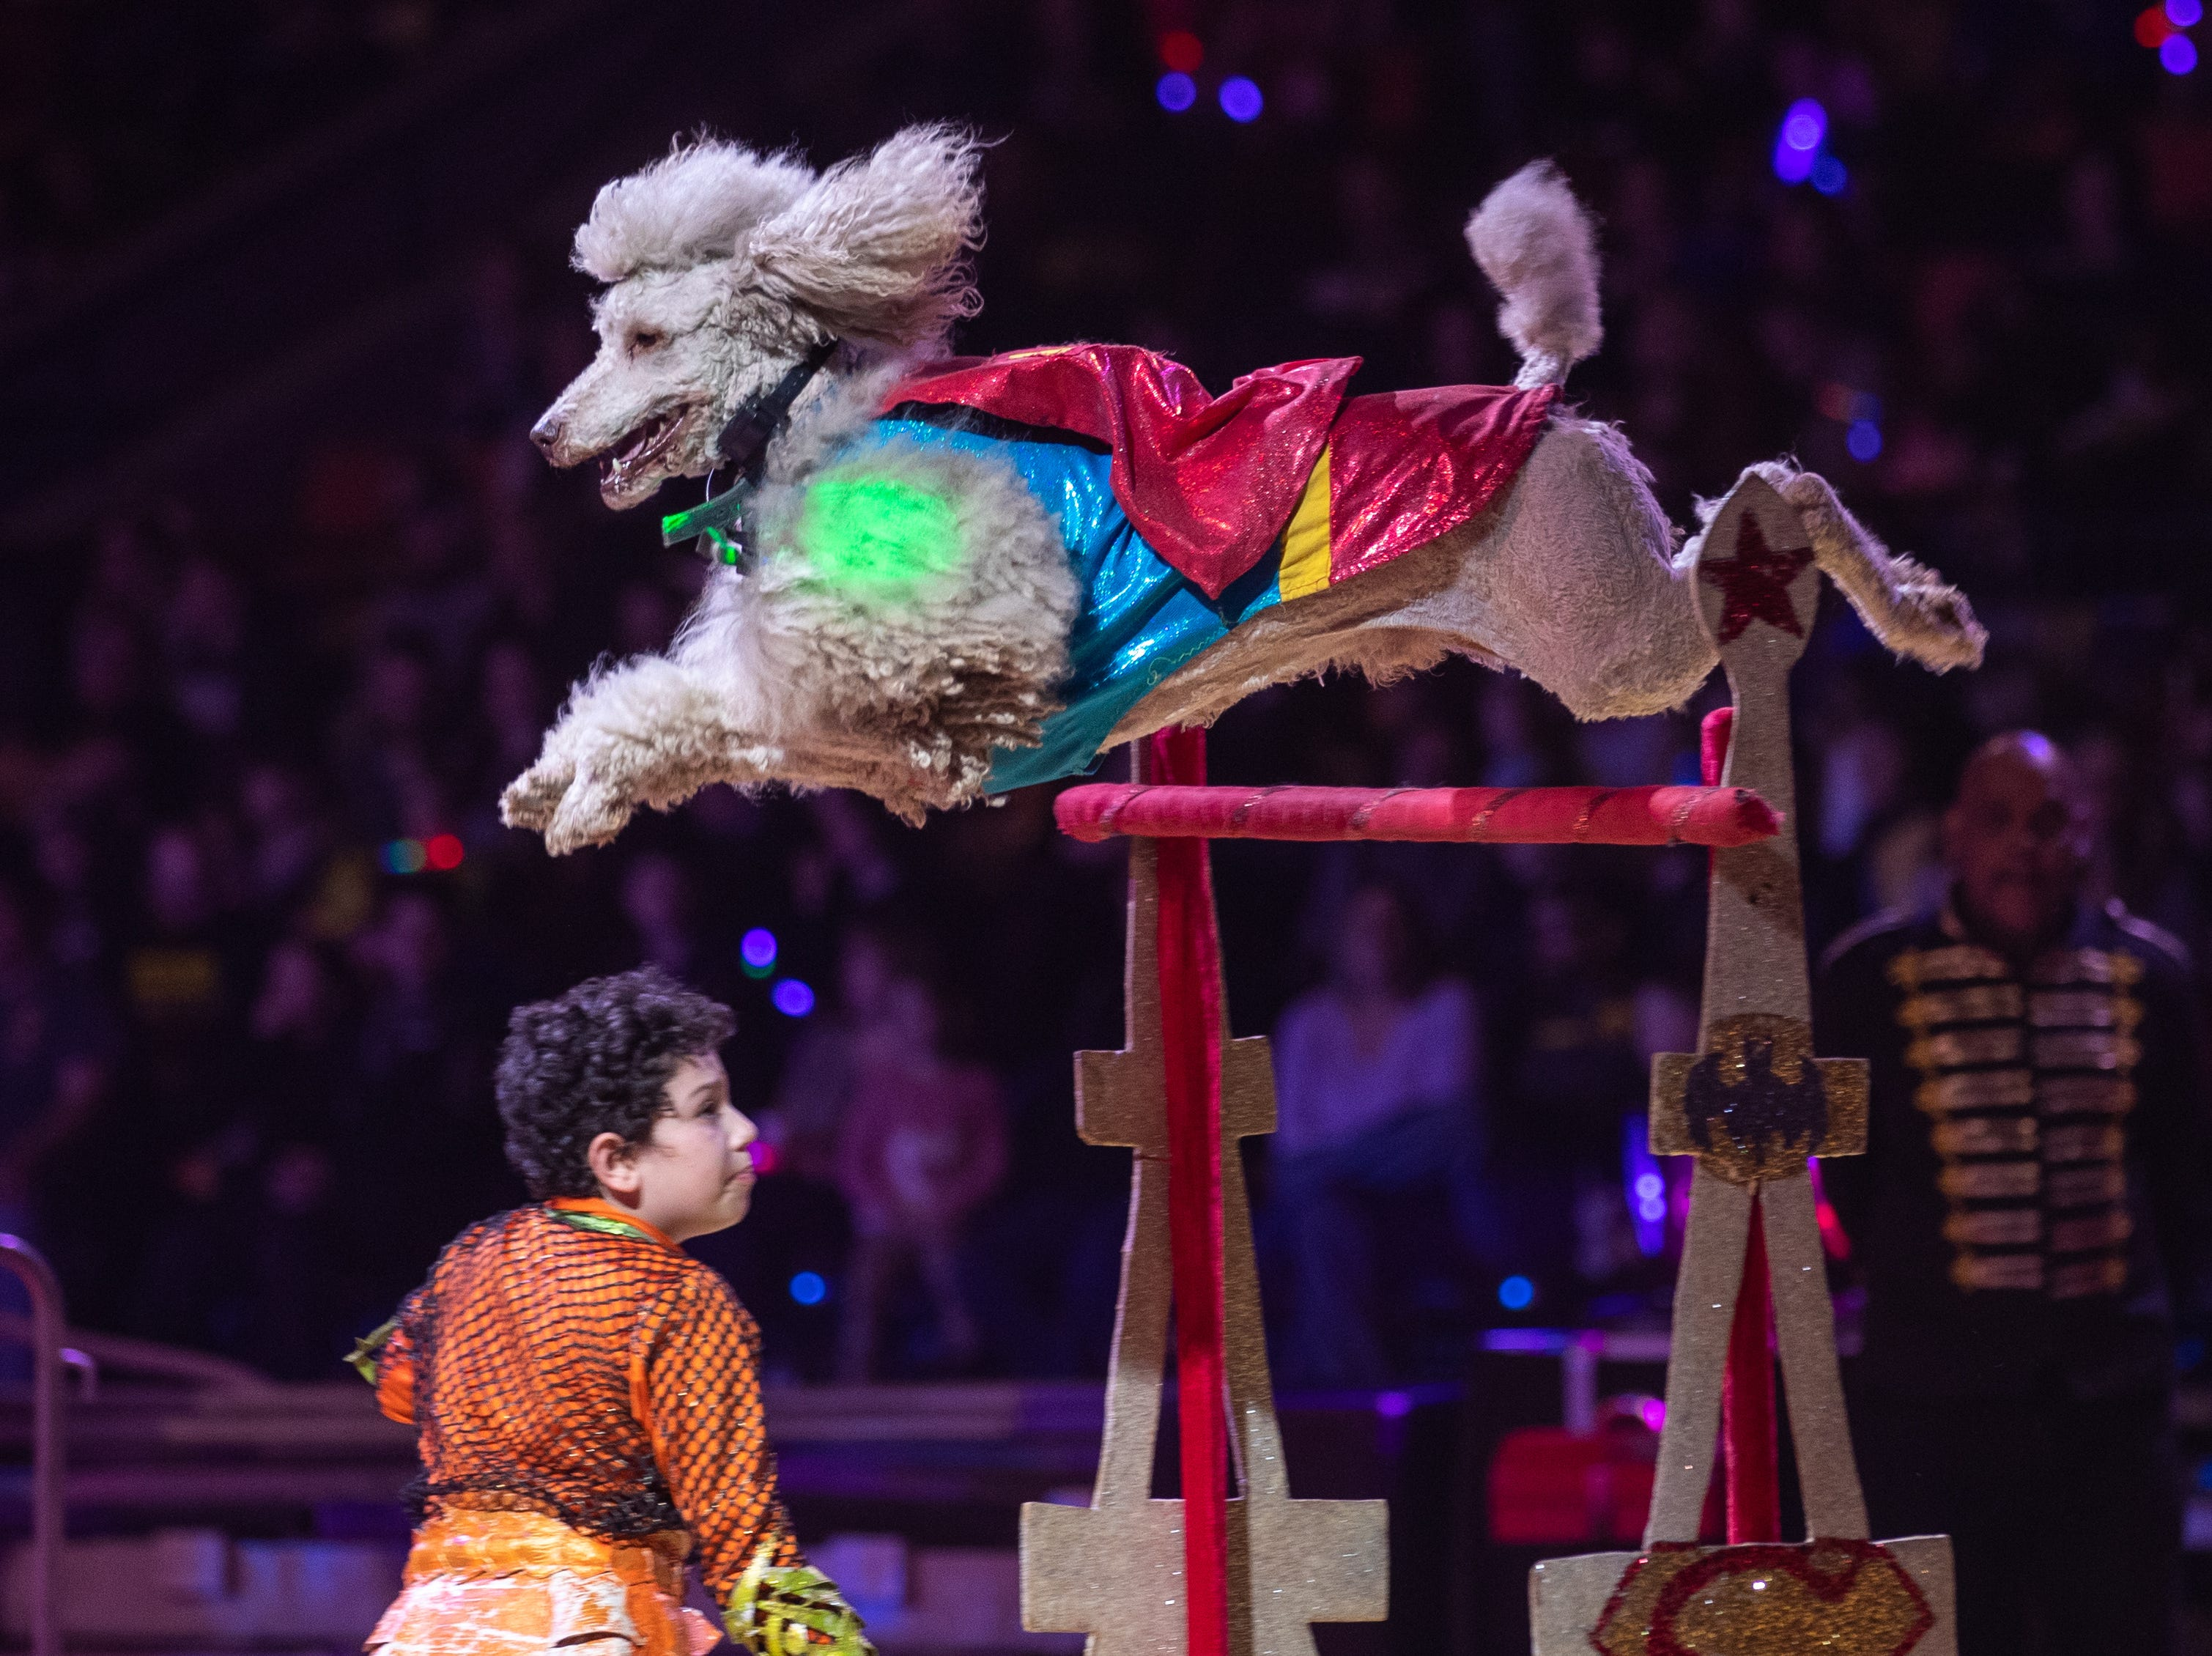 Super Poodle flies over the hurdle at the Kosair Shrine Circus, Saturday, Feb. 9, 2019 in Louisville Ky.